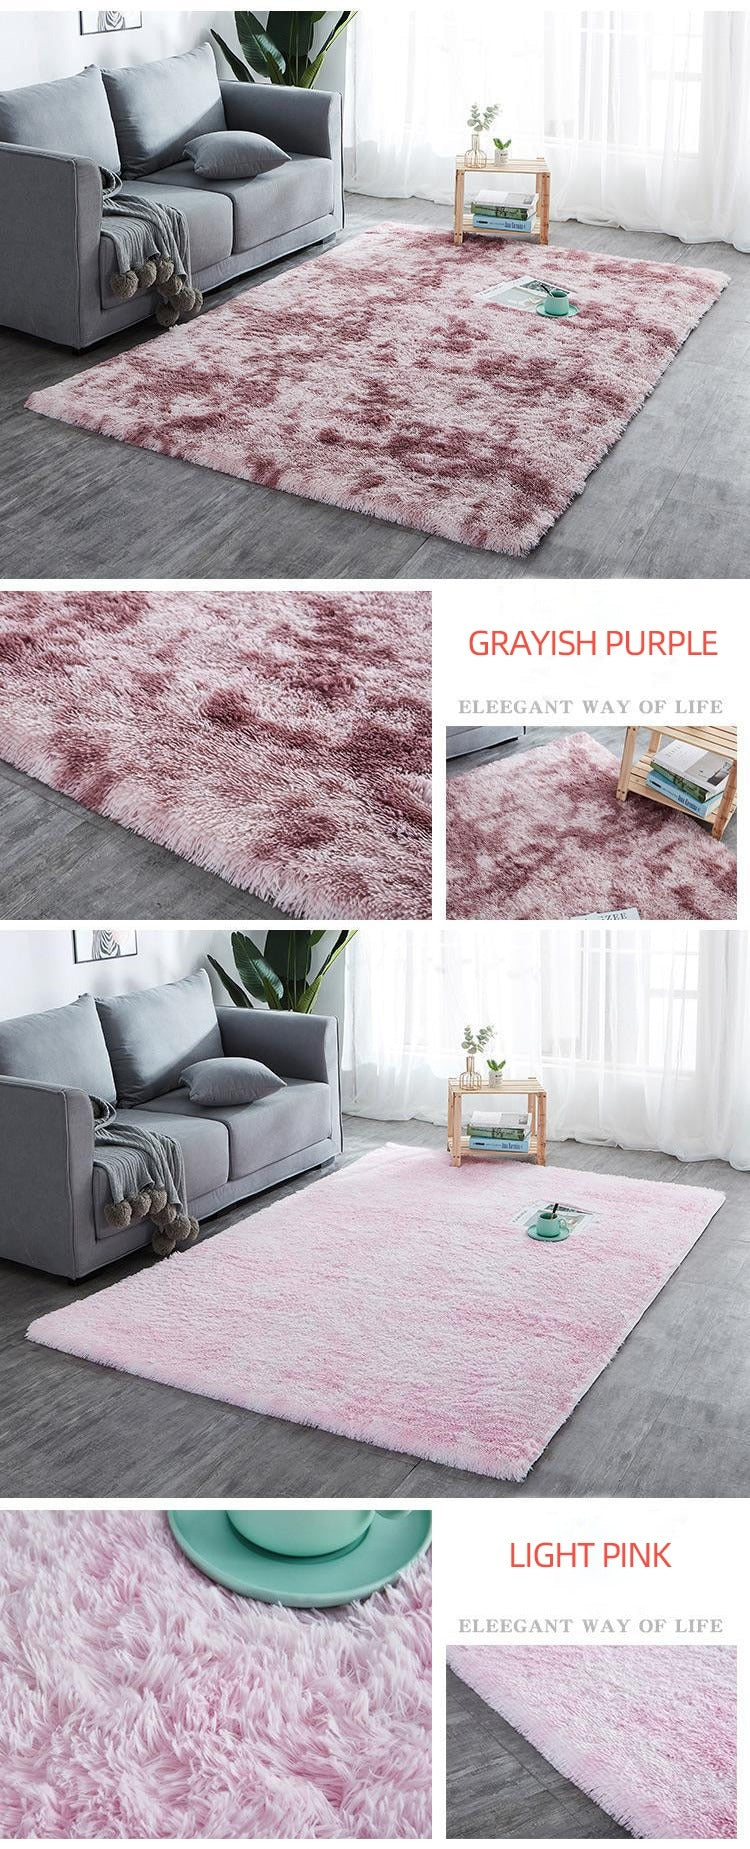 Grayish purple and light pink Rug